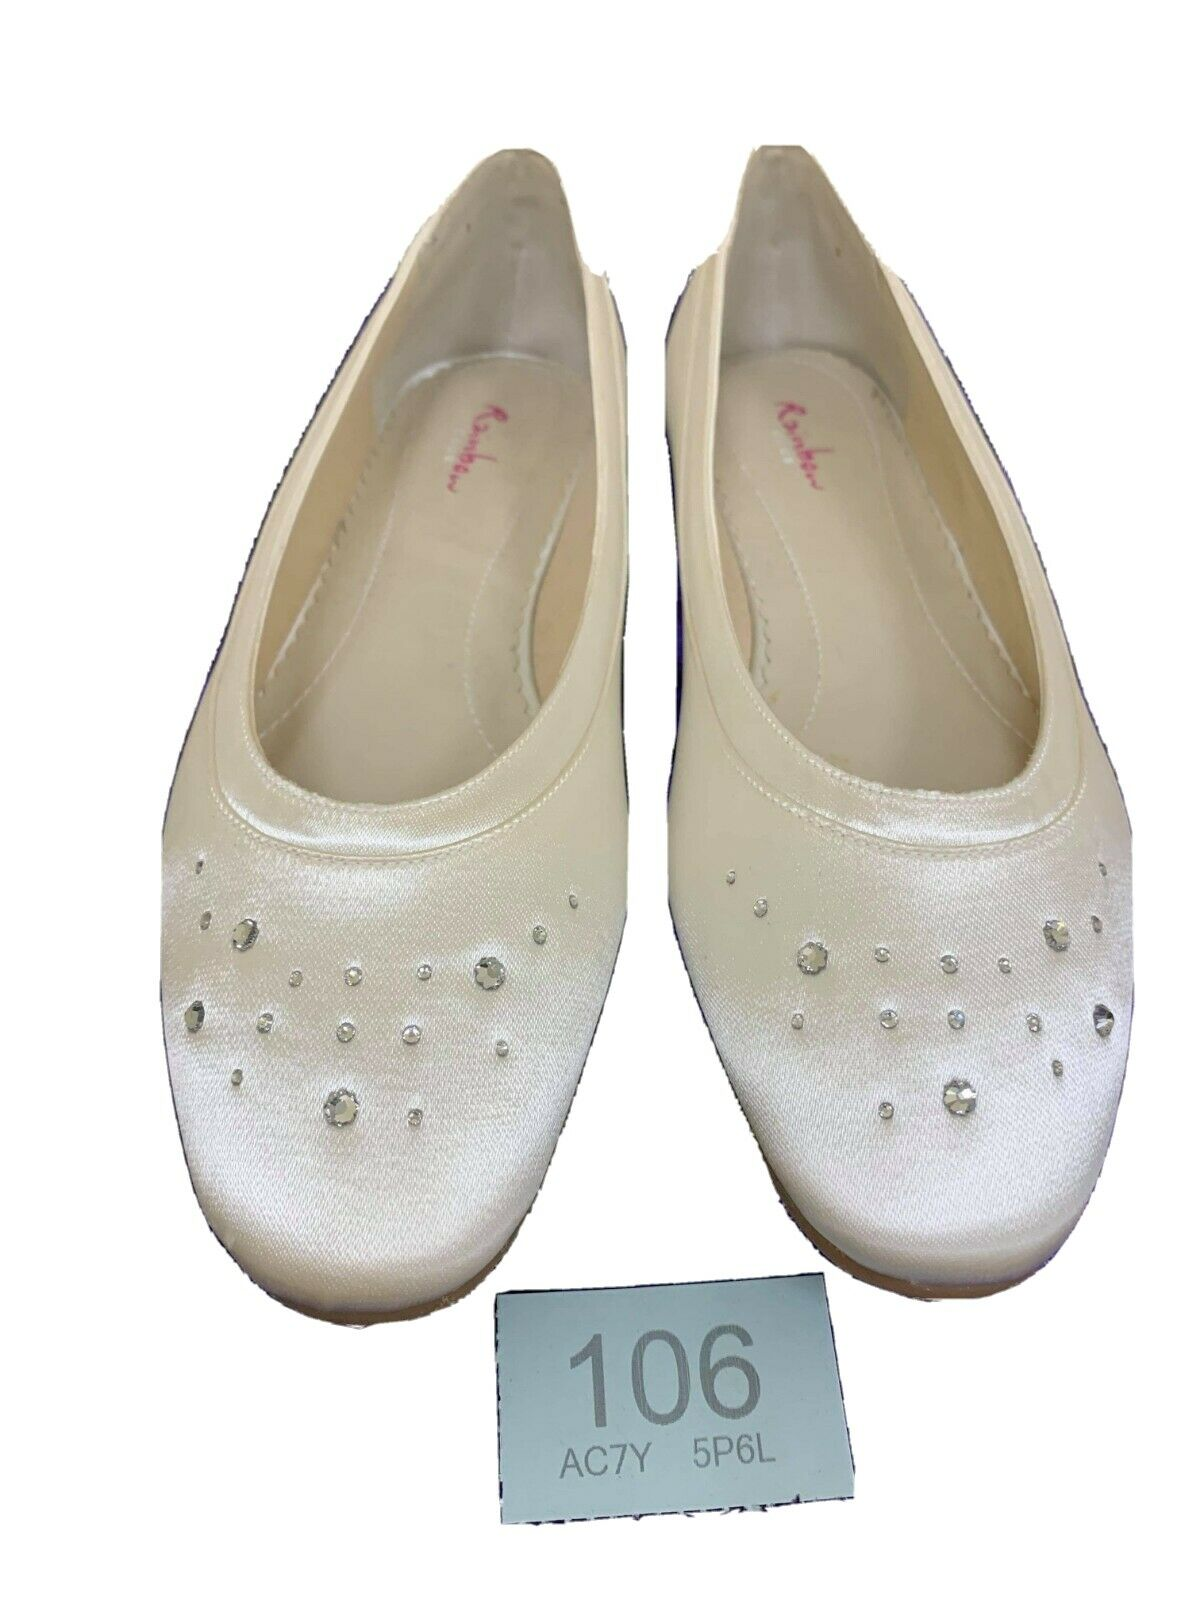 New in box. Rainbow Club wedding shoes size 3 satin Style Maggie flats Code 106